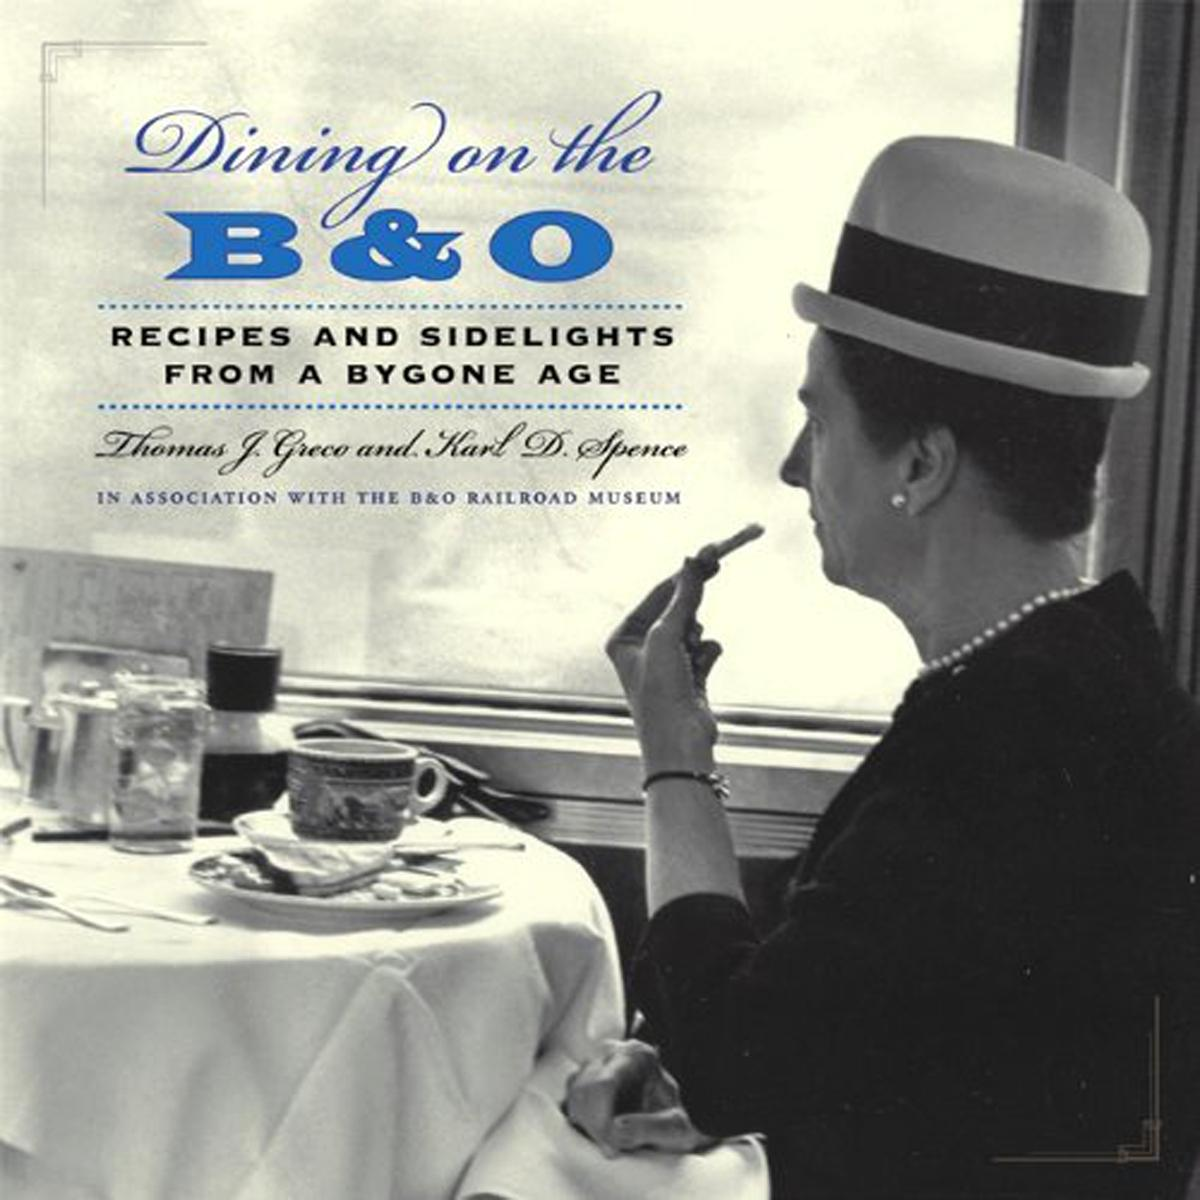 Dining on the B&O : Recipes and Sidelights from a Bygone Age